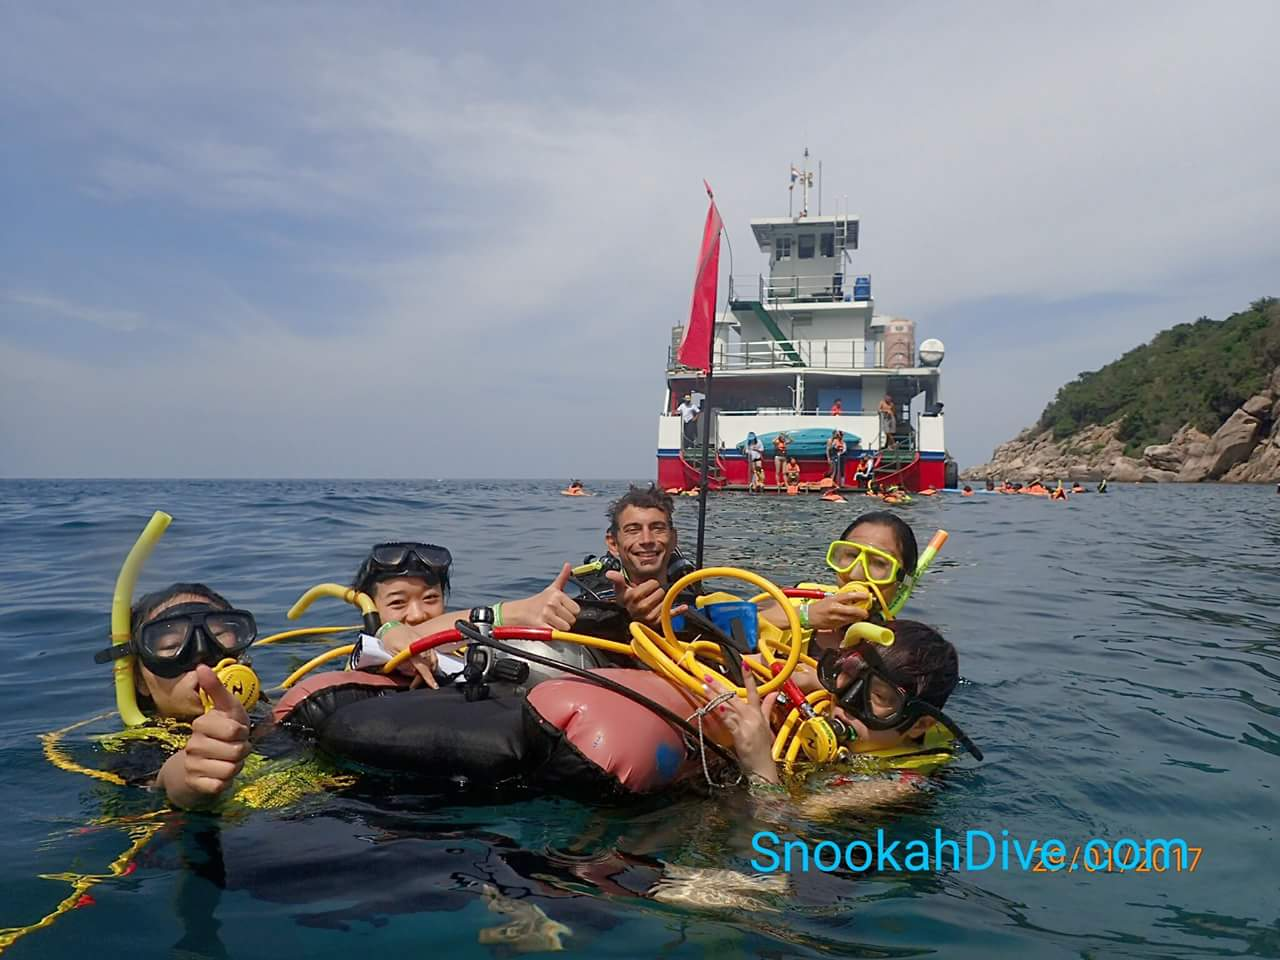 Dive Center For Sale - Watersports Operation in the Gulf of Thailand. Own & Operate A Business in Paradise.